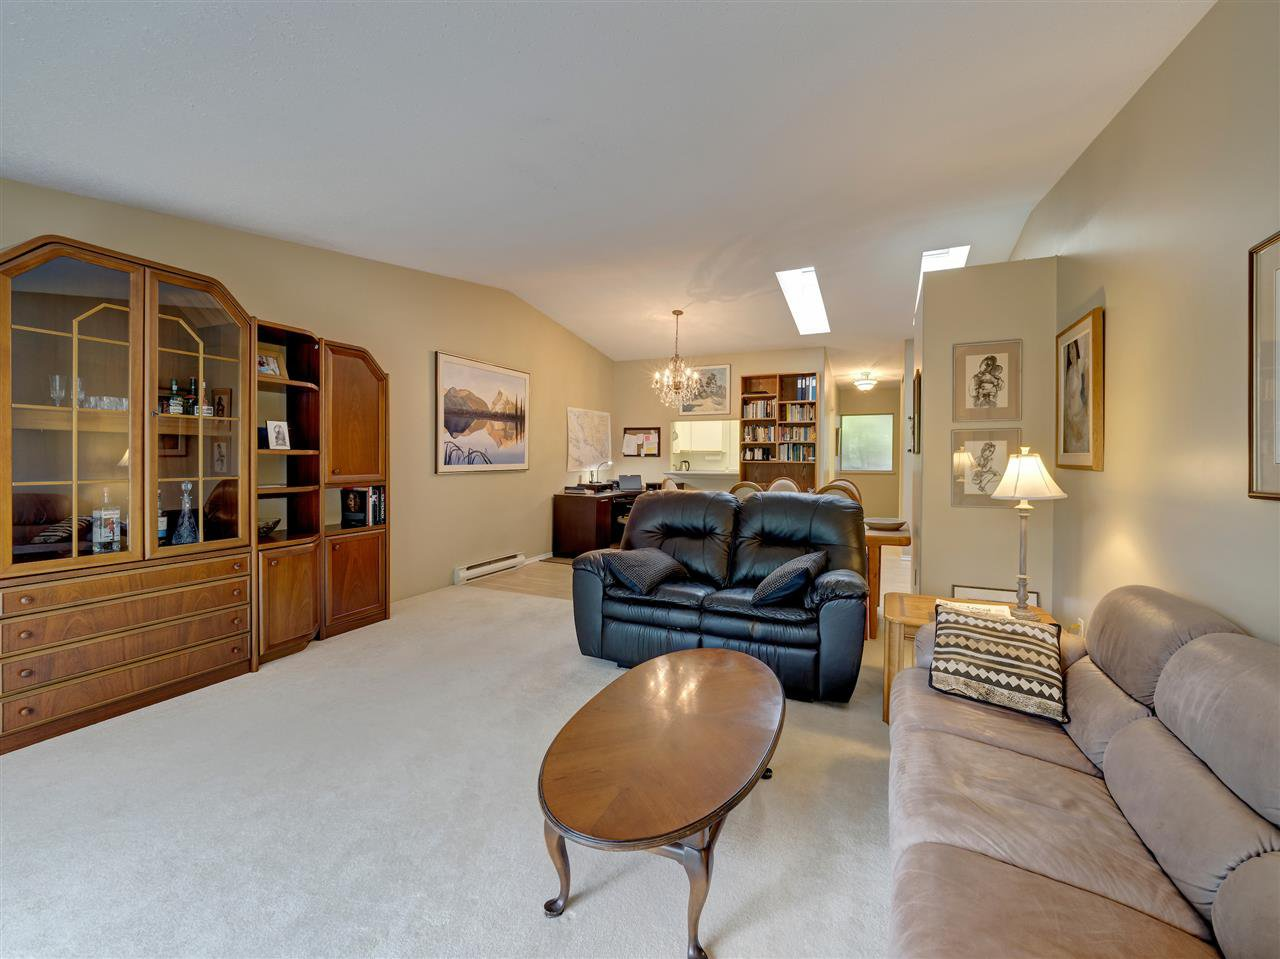 """Photo 12: Photos: 41 555 EAGLECREST Drive in Gibsons: Gibsons & Area Townhouse for sale in """"GEORGIA MIRAGE"""" (Sunshine Coast)  : MLS®# R2485008"""